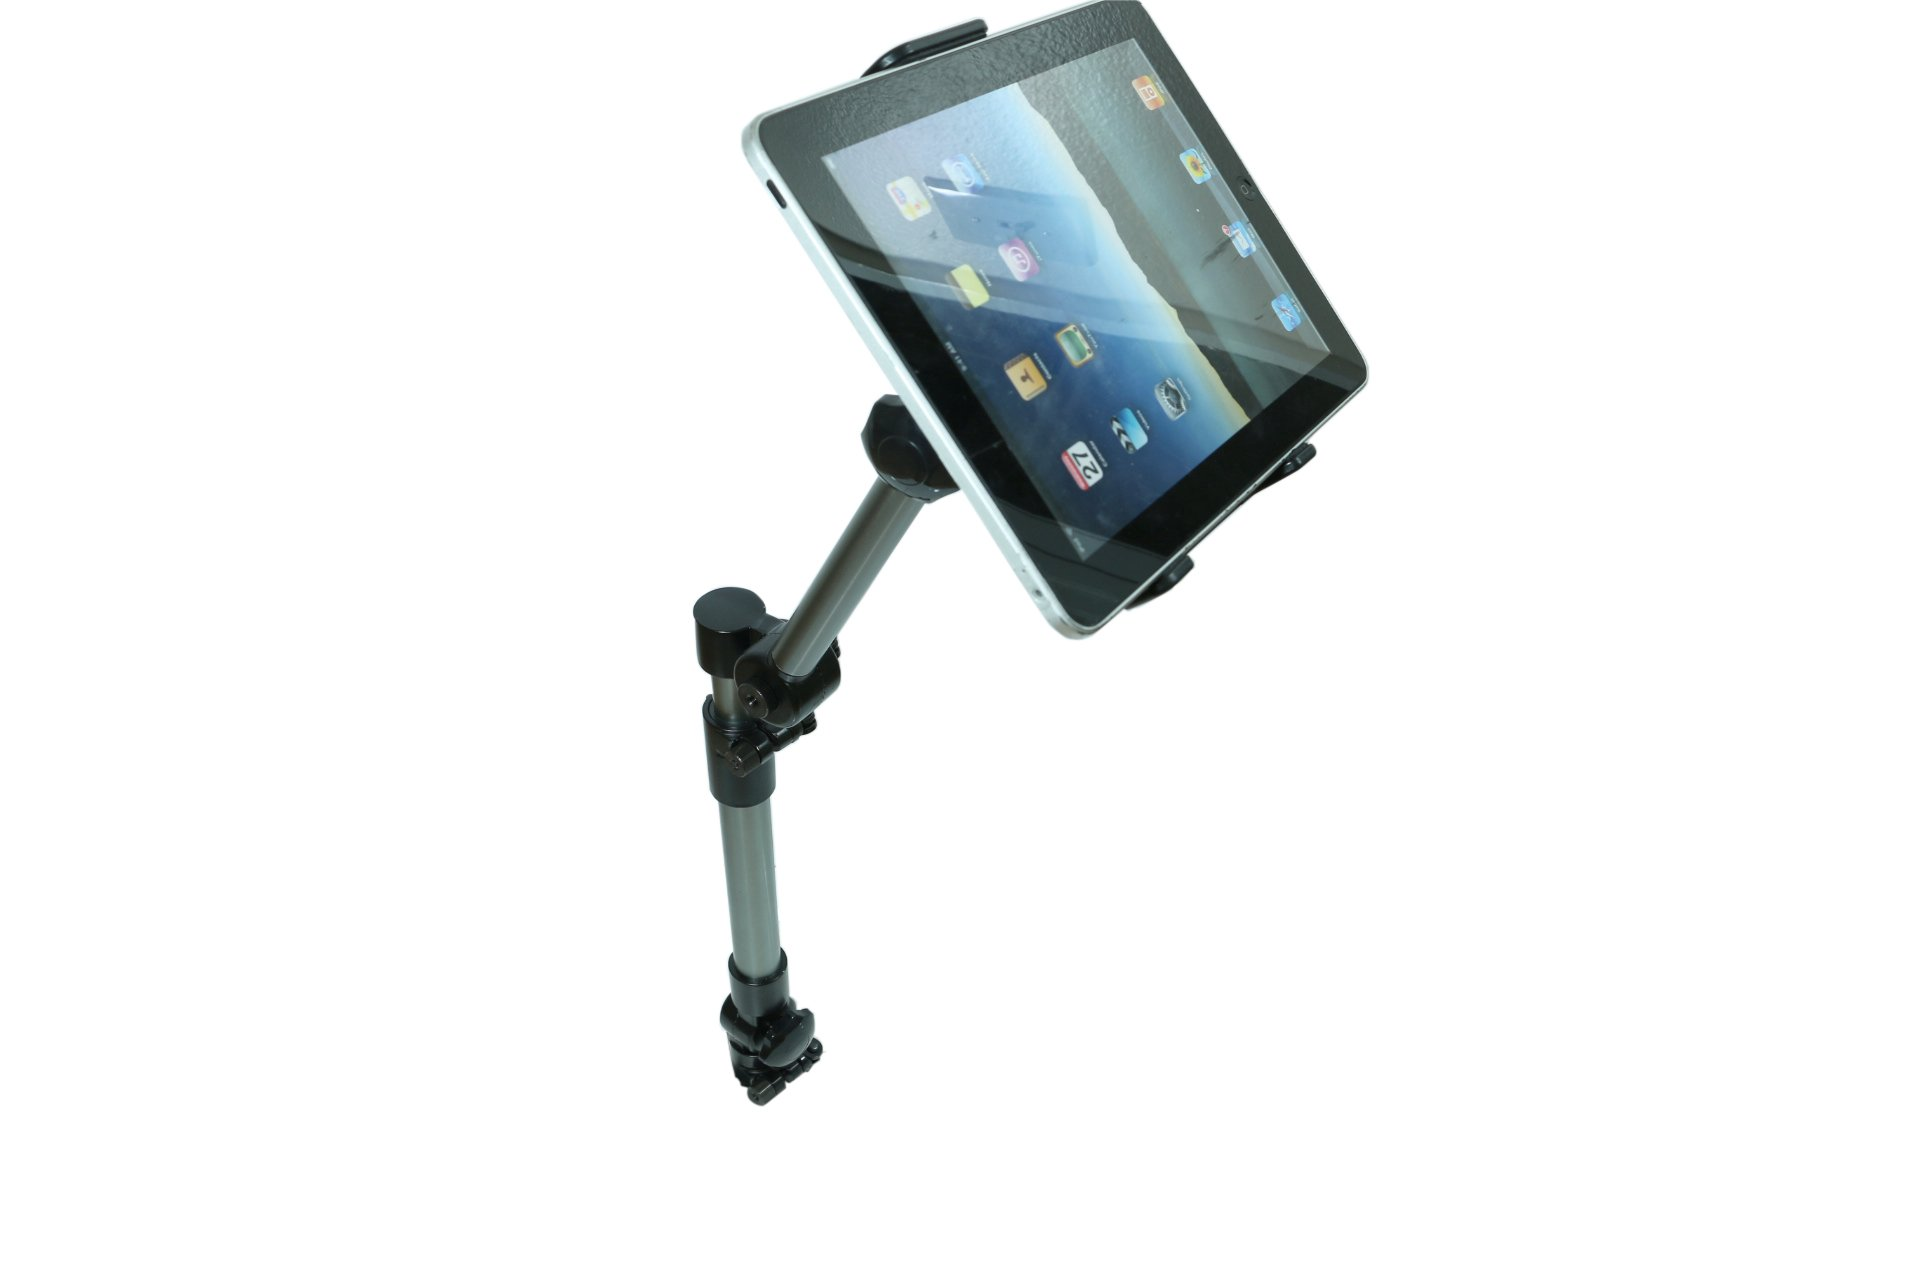 UTSM-02 Heavy-duty Mount: In-Car Universal Tablet/Smartphone Holder